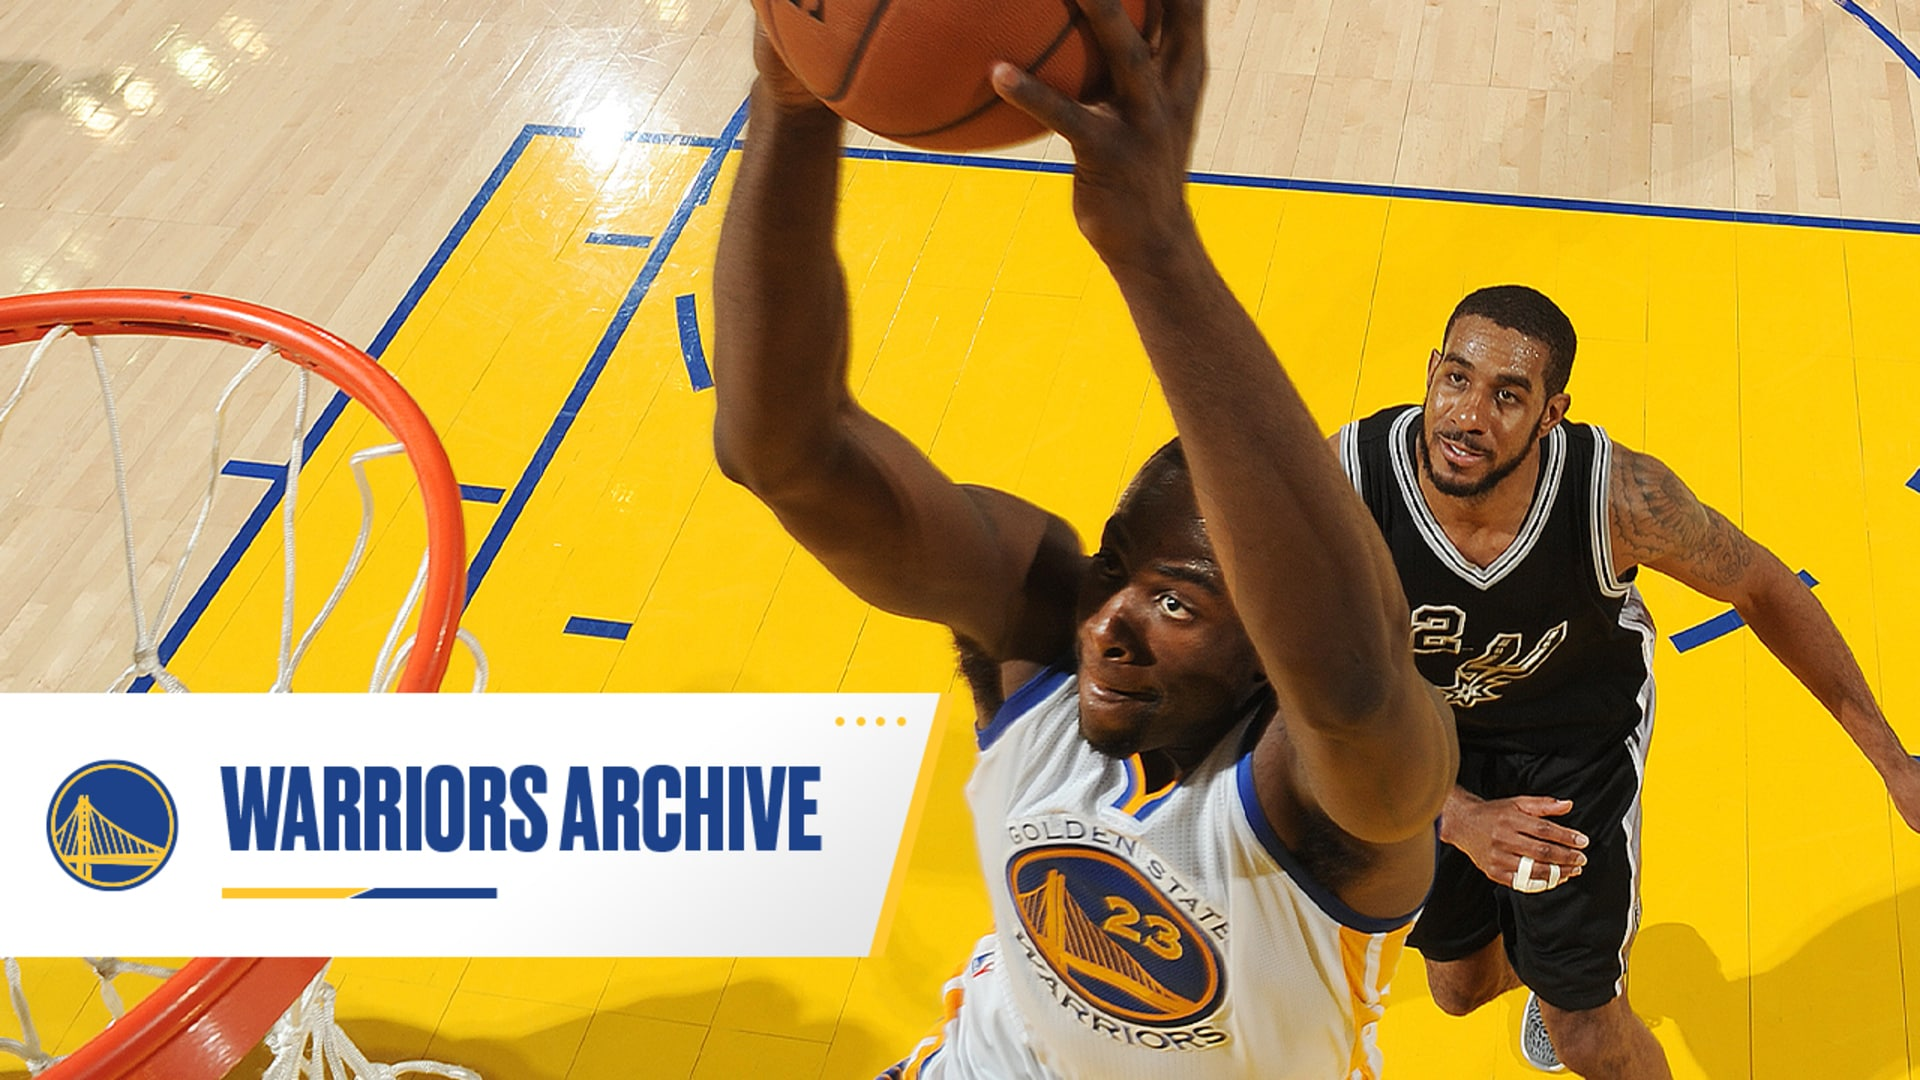 Dubs' 70th Win Clinches First Place in Western Conference